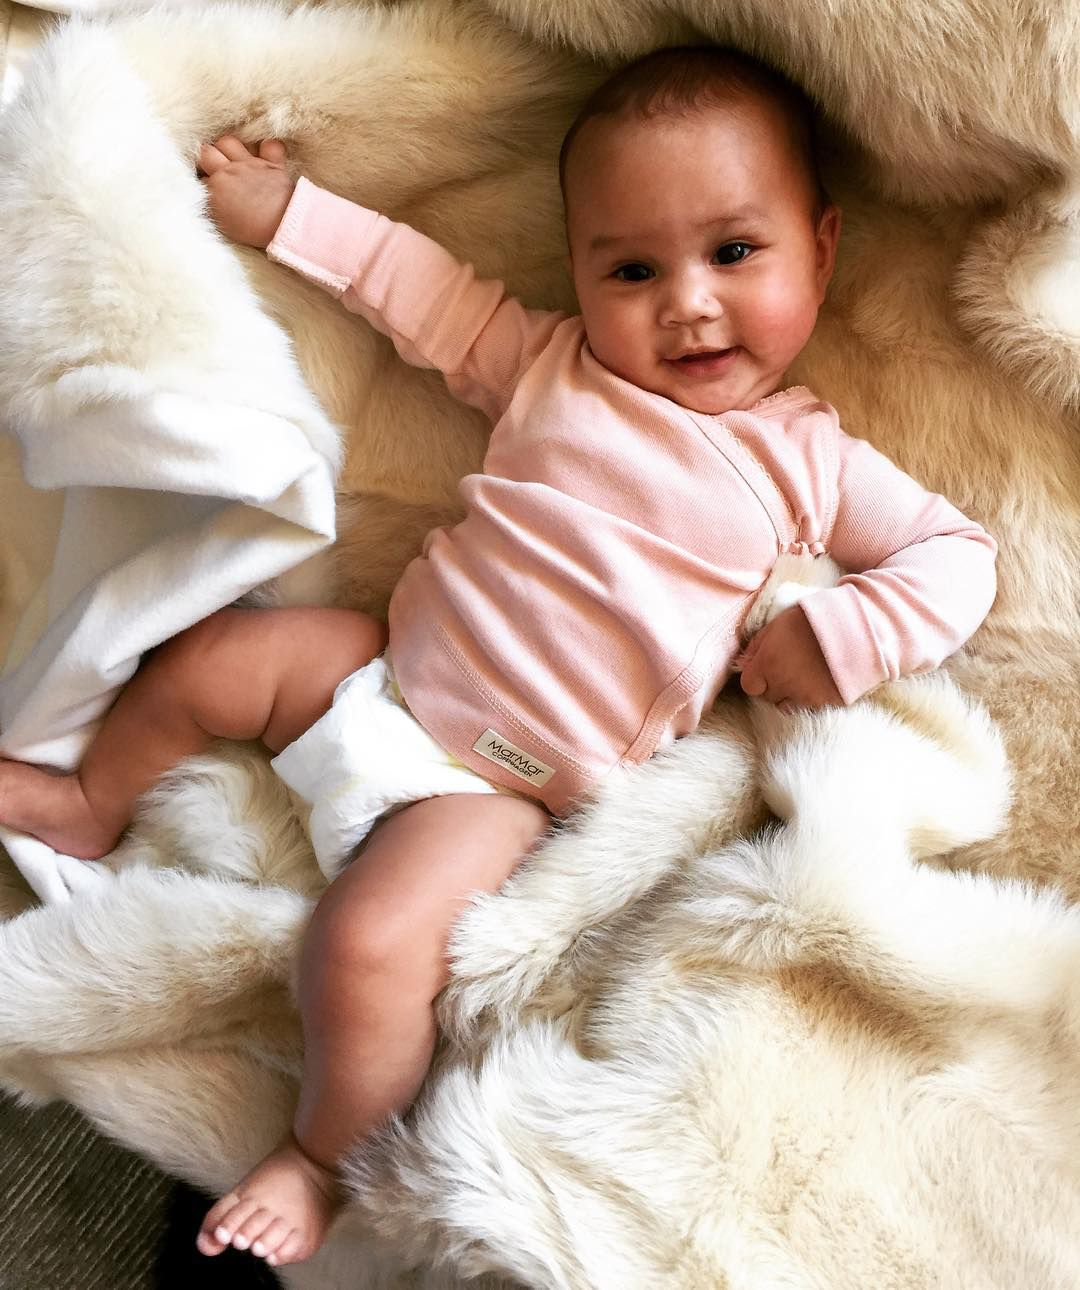 chrissy teigen and john legend have spoiled us with these cute baby